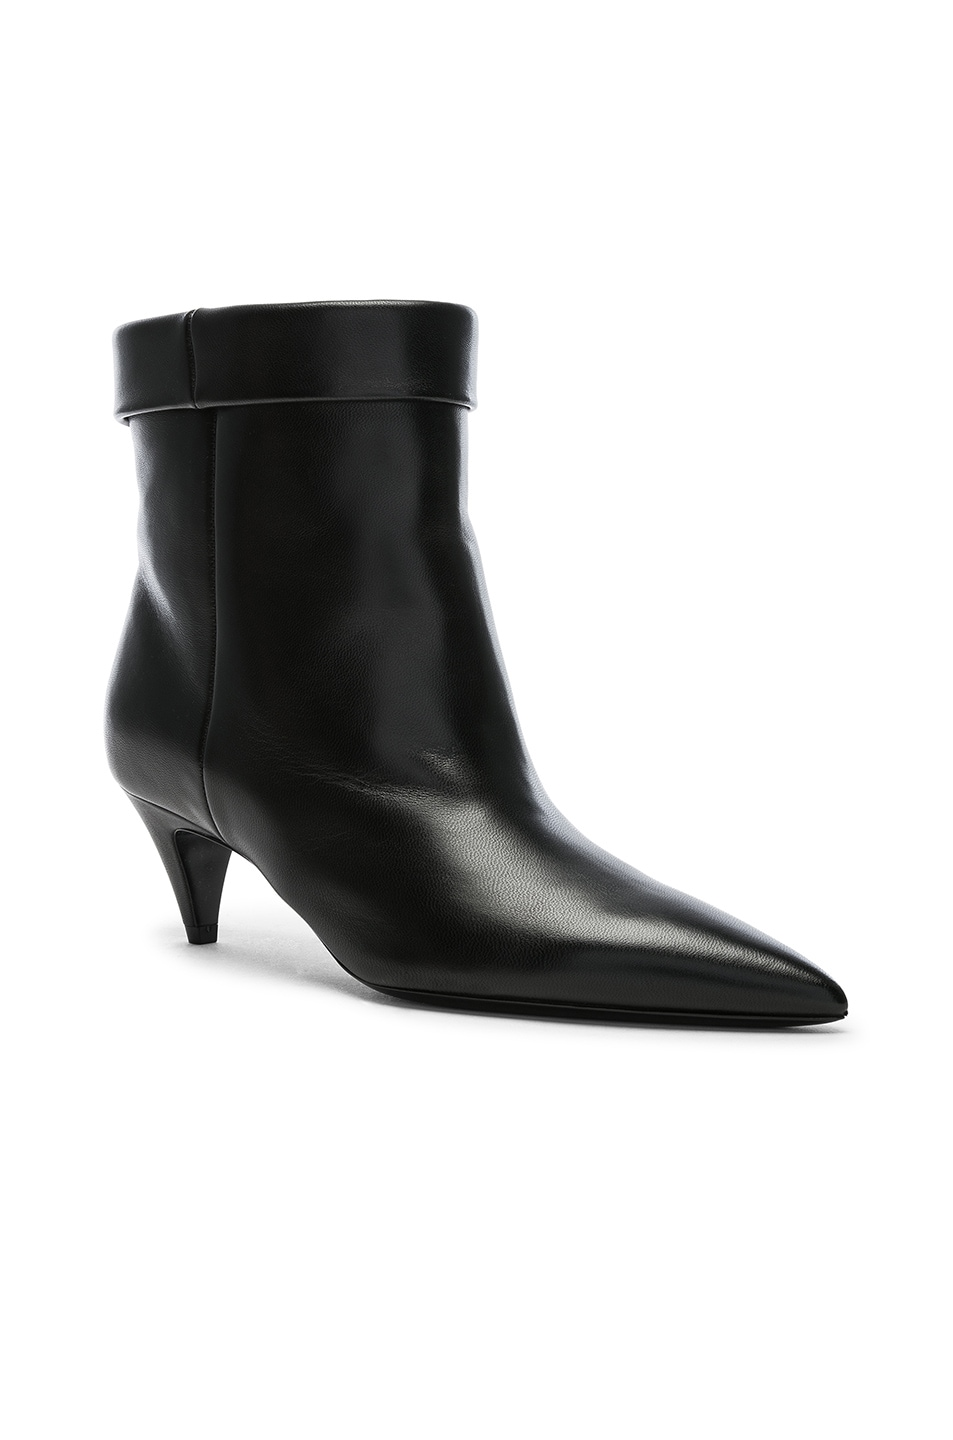 Image 2 of Saint Laurent Charlotte Kitten Heel Ankle Boots in Black